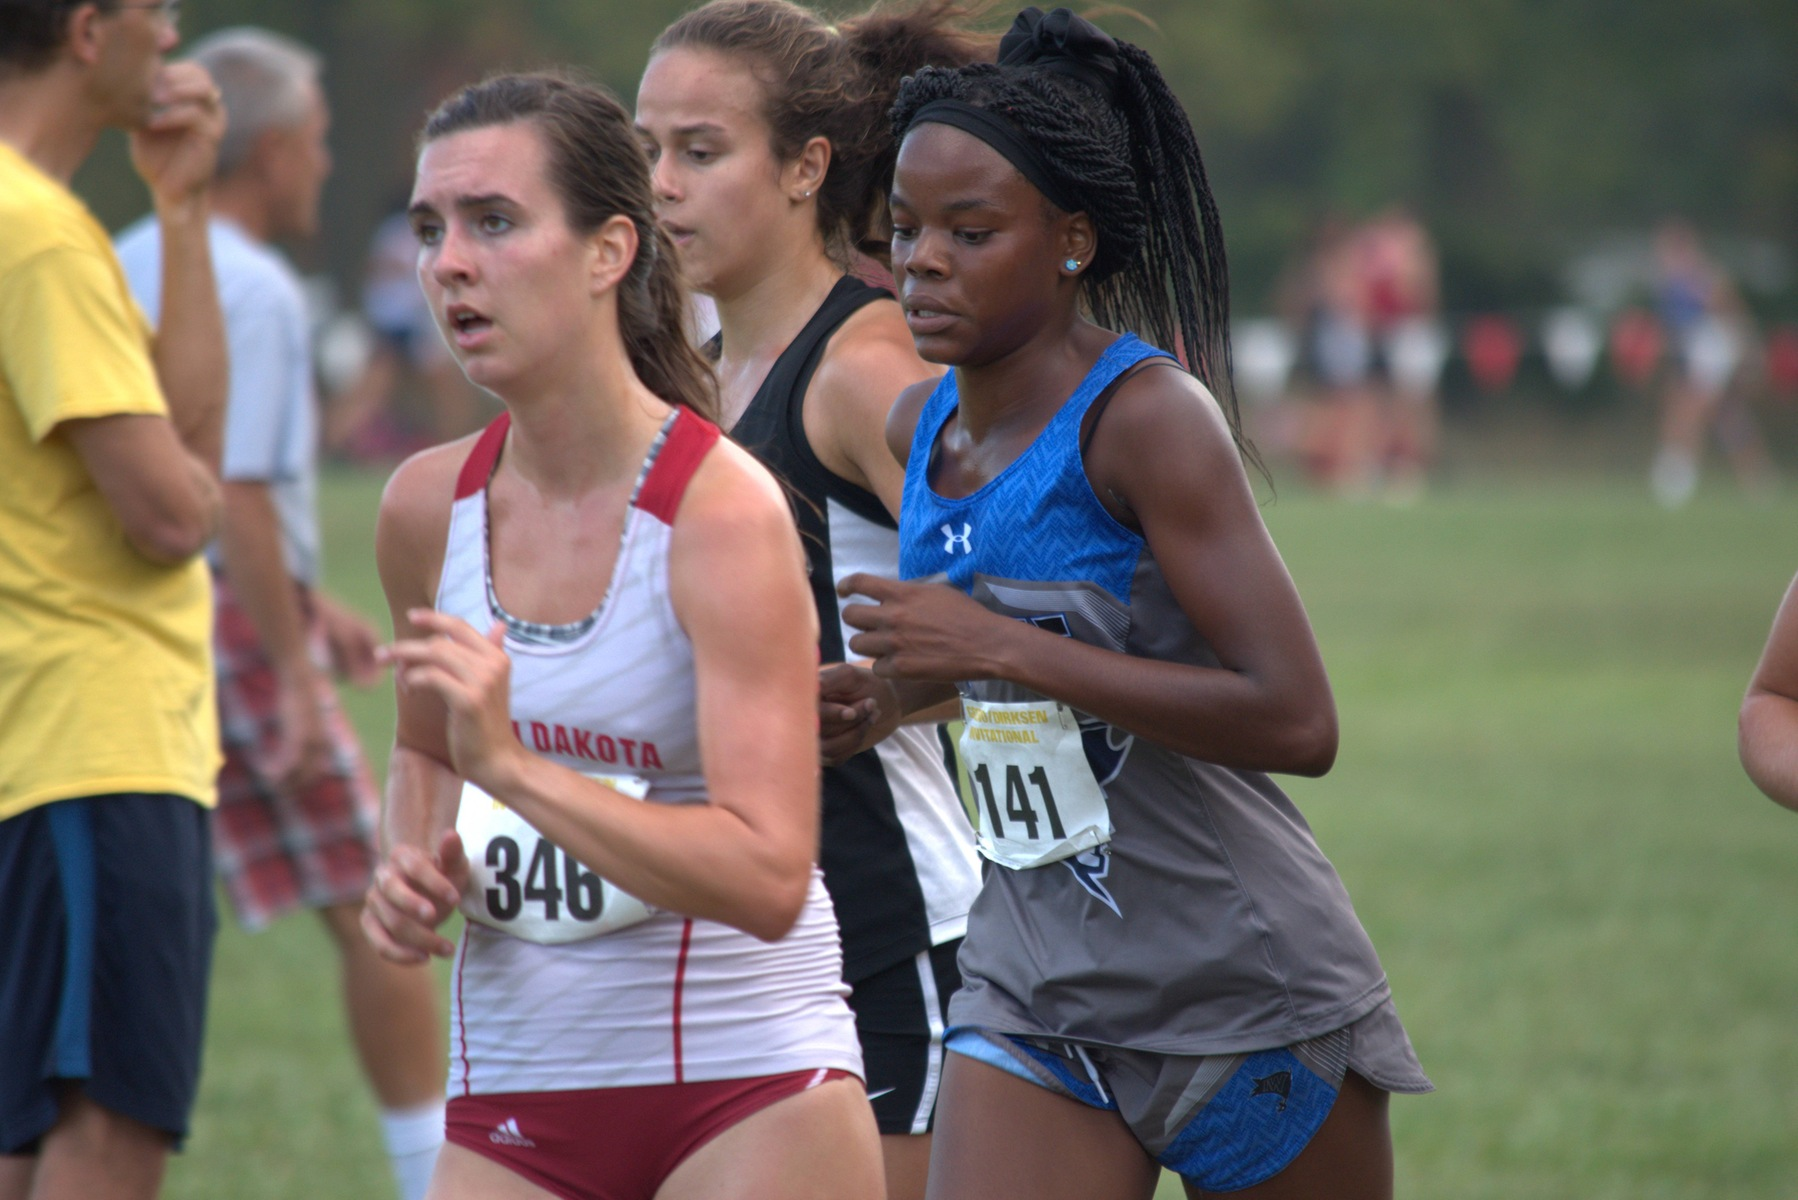 Robb leads Reivers to second place finish at Region XI Championships